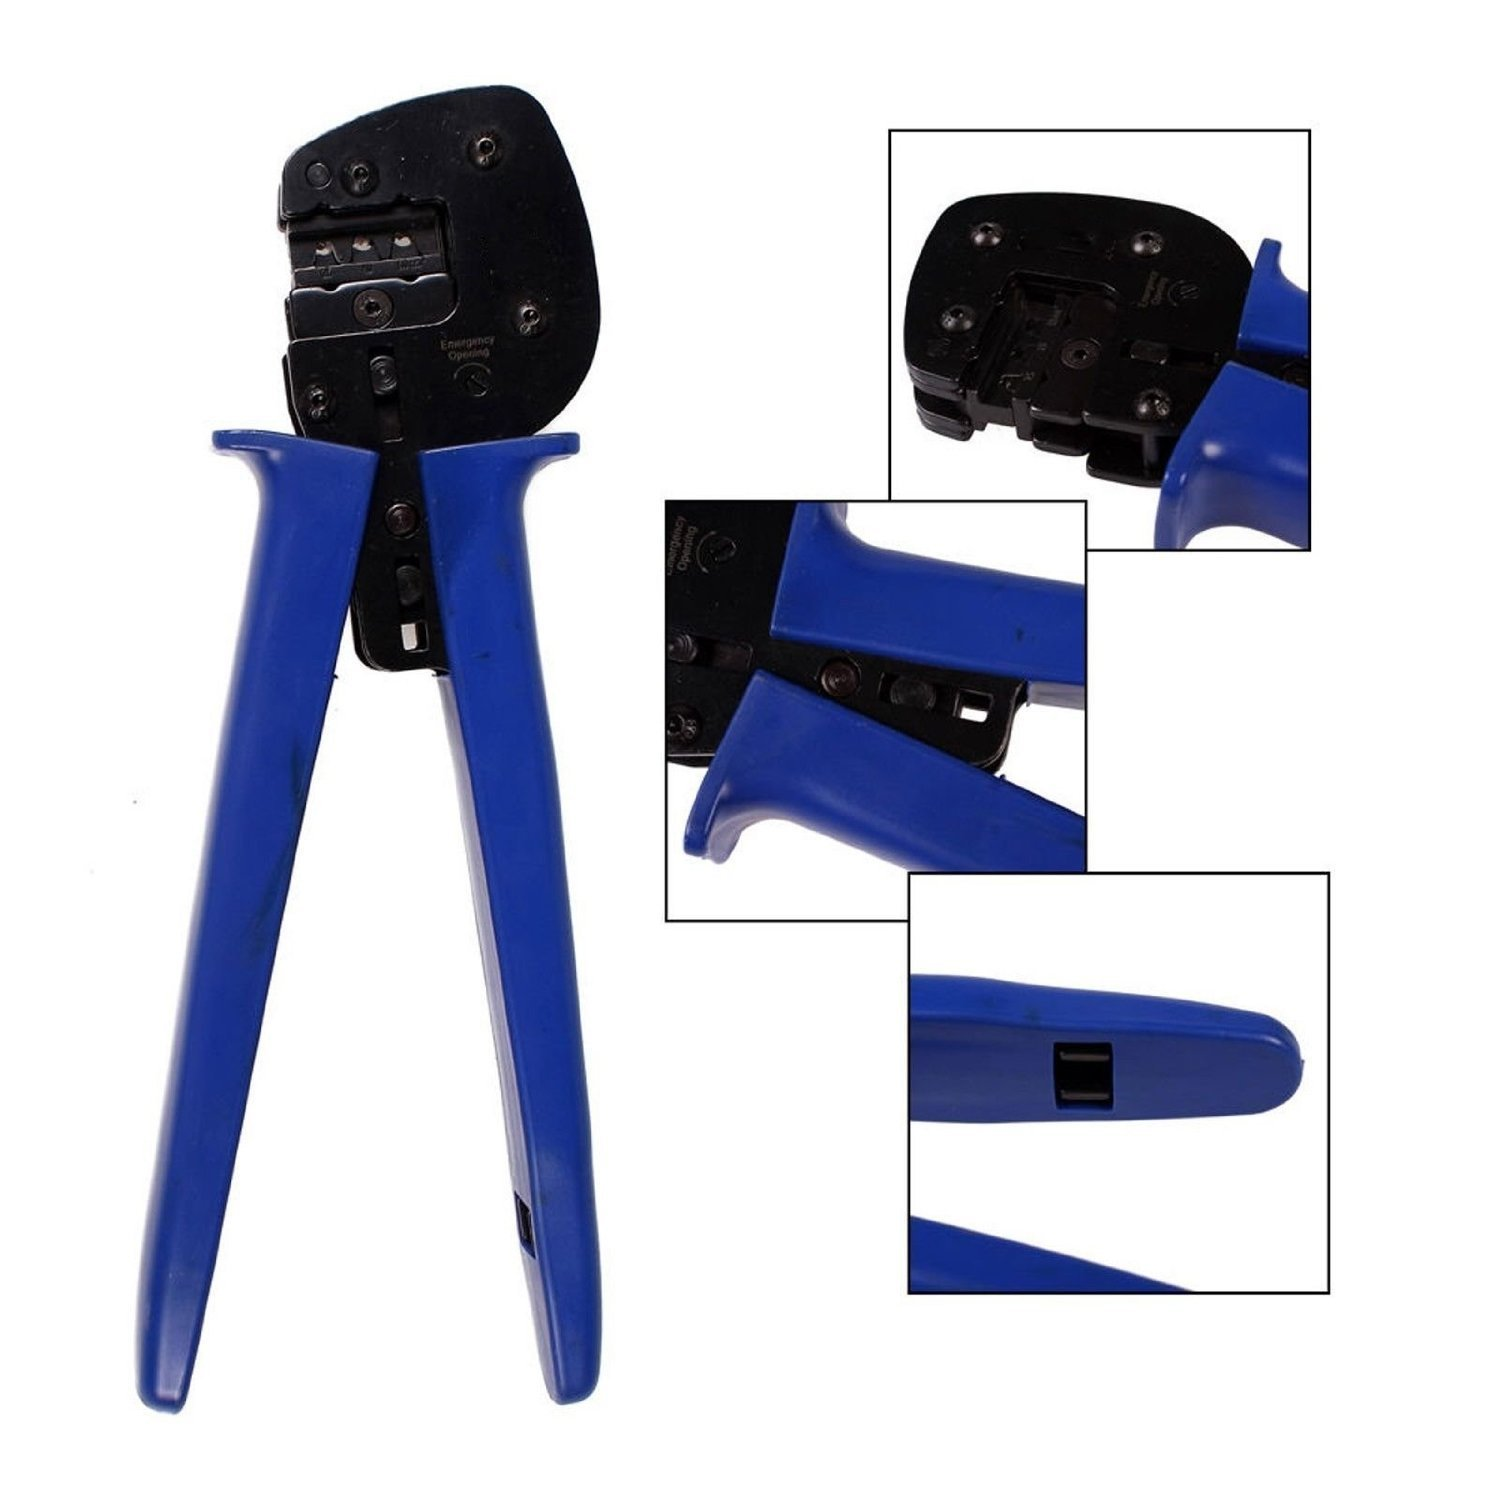 Signstek MC4 Solar Panel Cable Crimping Crimper Tool for 2.5, 4, 6.0mm² Connector Cable/Solar Panel